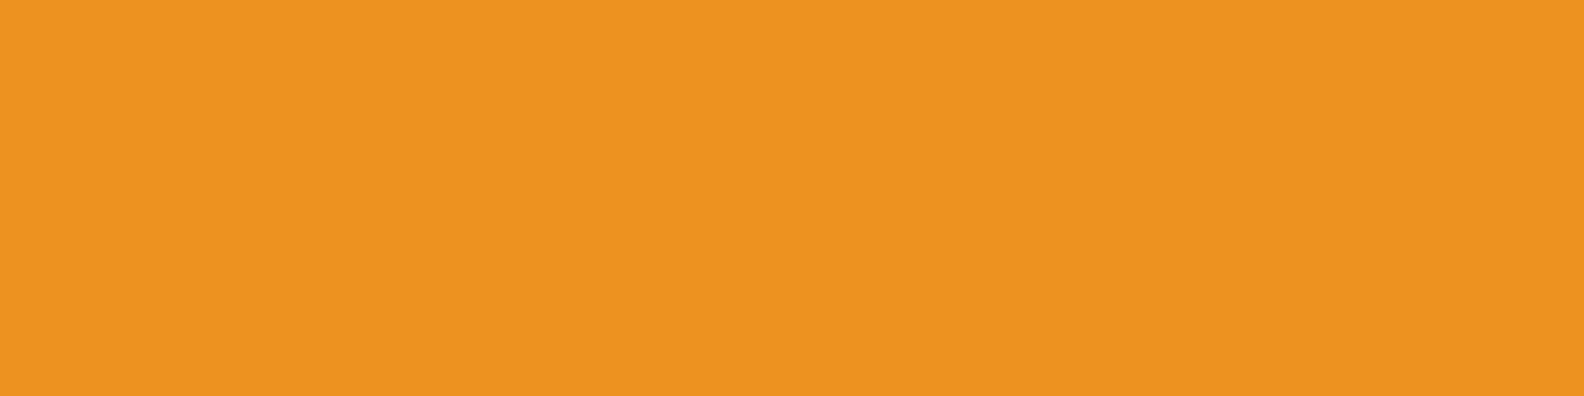 1584x396 Carrot Orange Solid Color Background